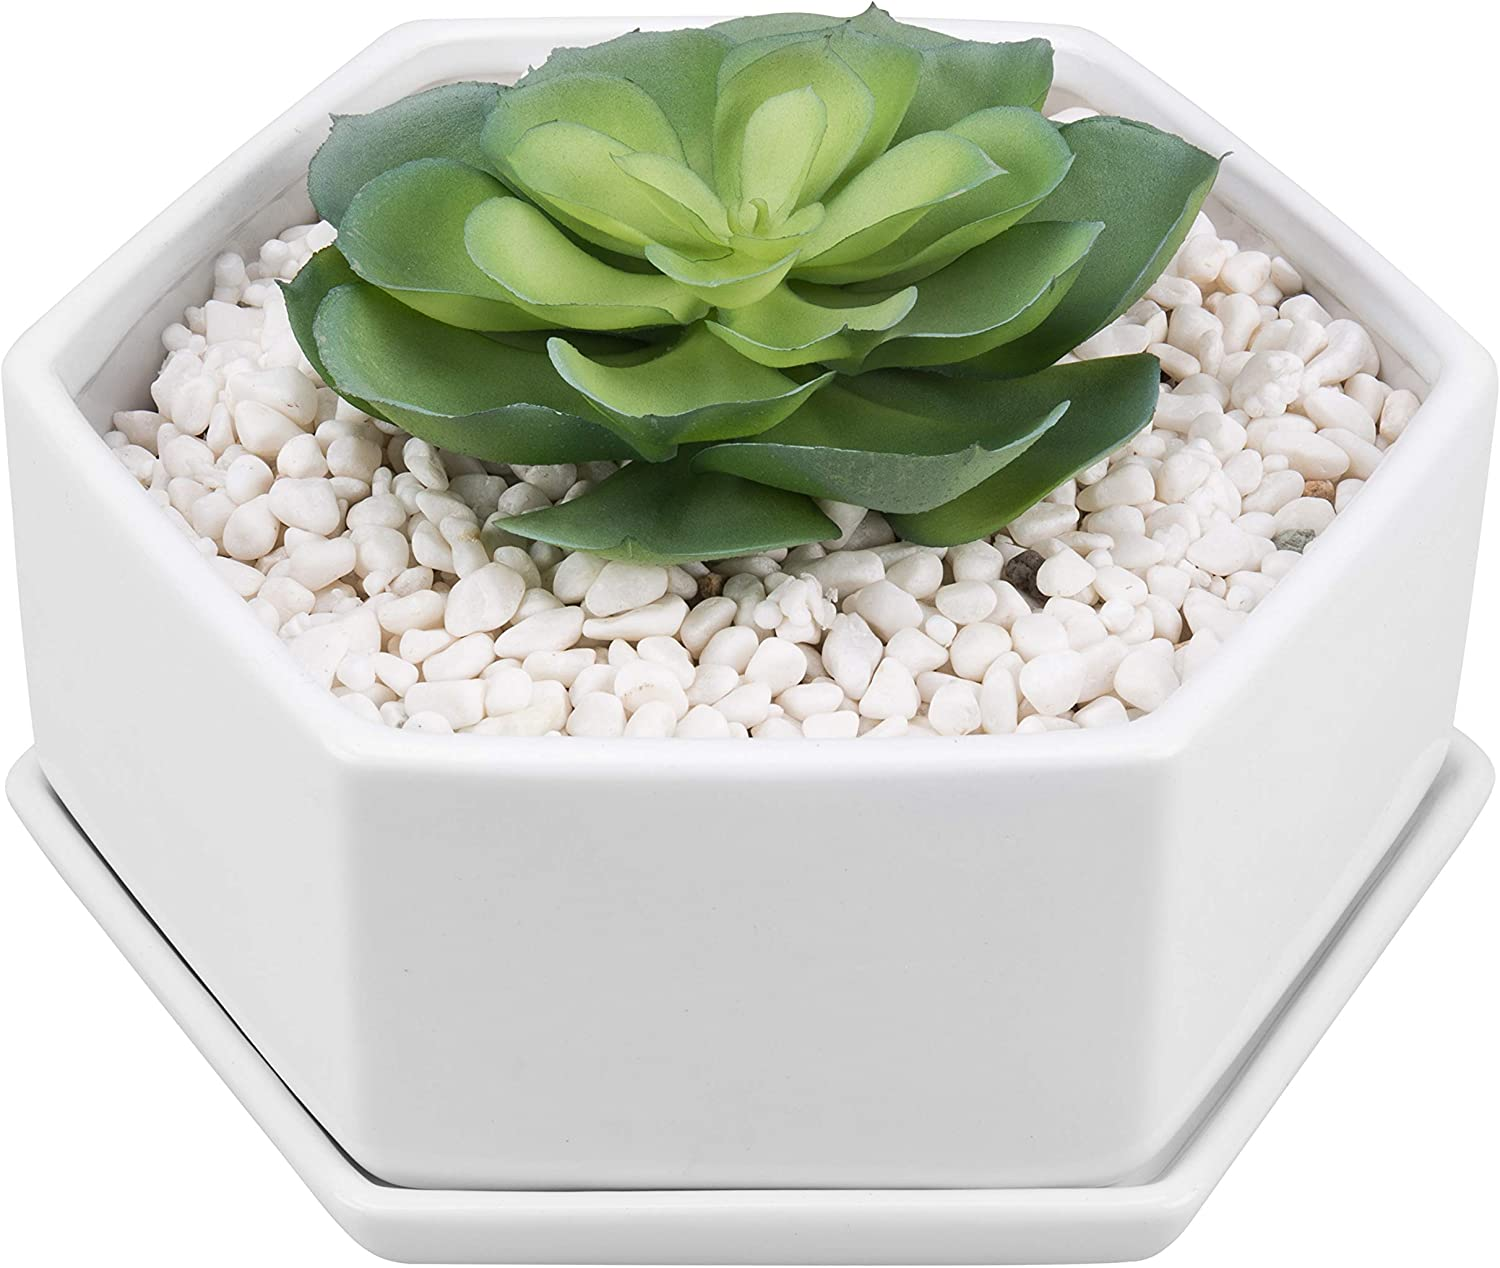 MyGift 9-inch Hexagonal White Max 64% OFF Ceramic Planter Succulent with wholesale Pot